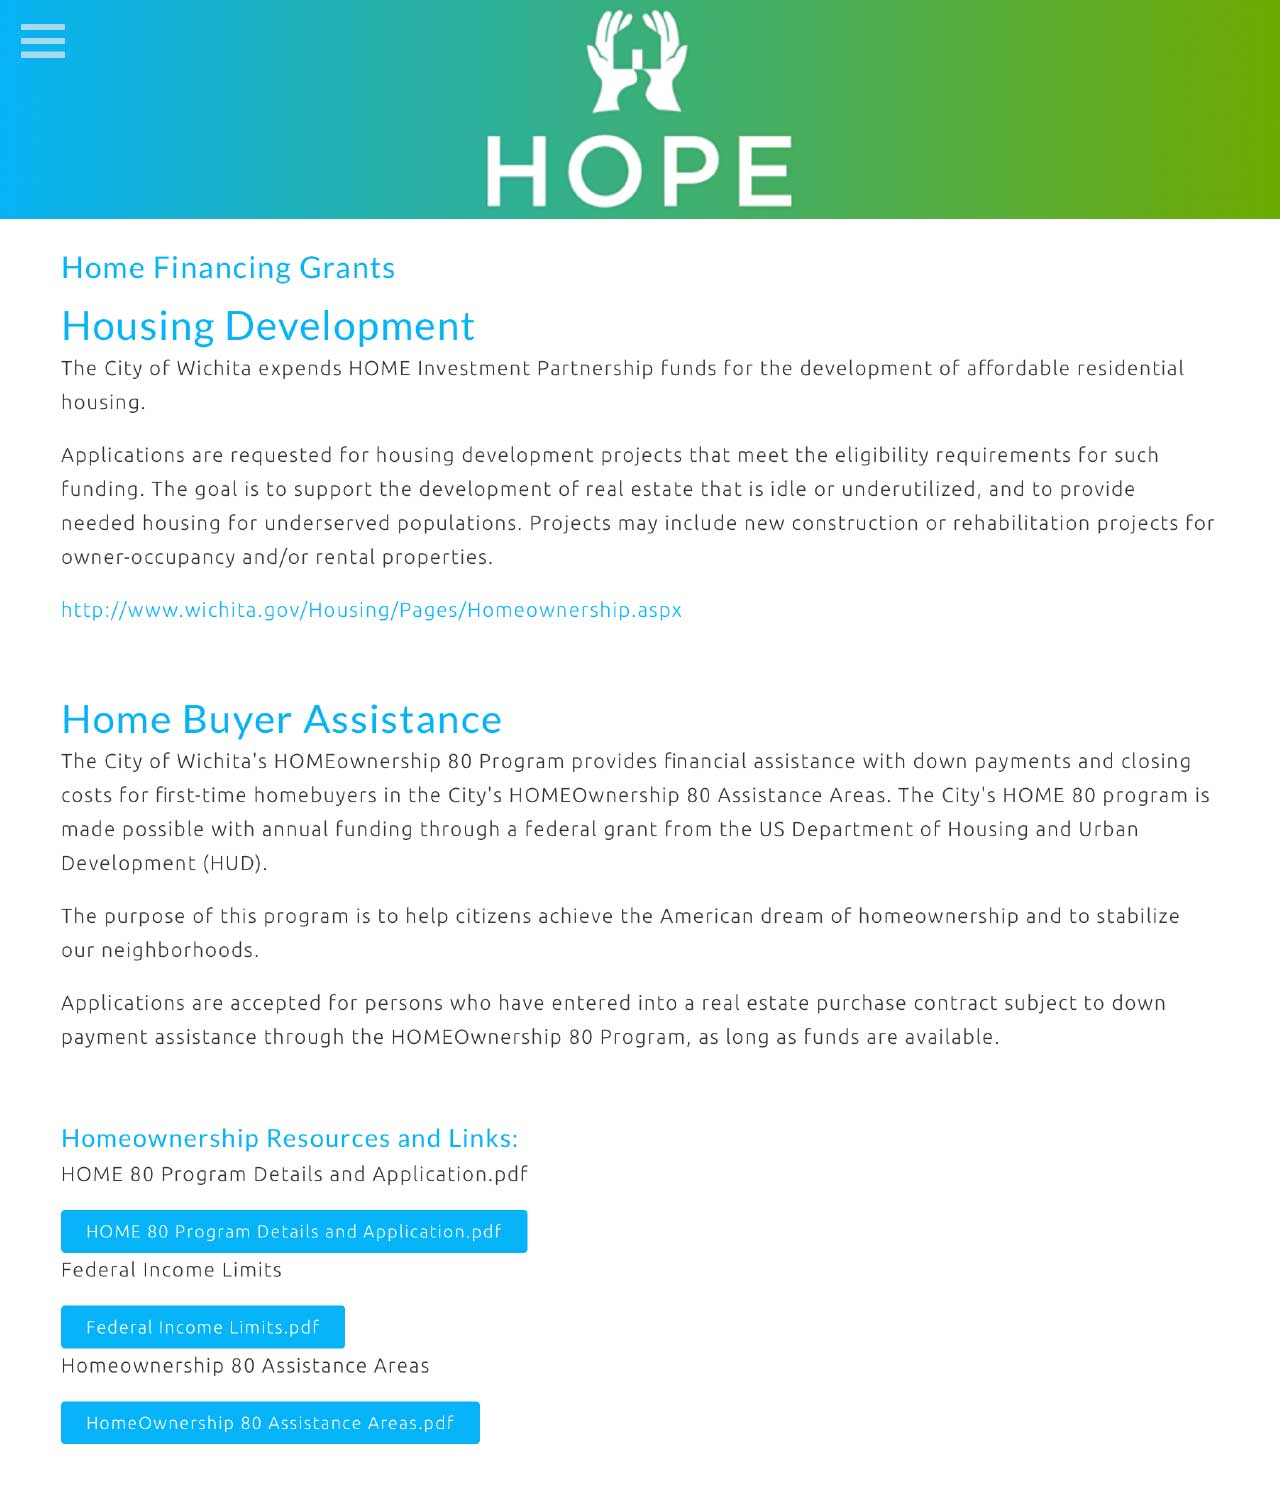 website HOPE IMG03